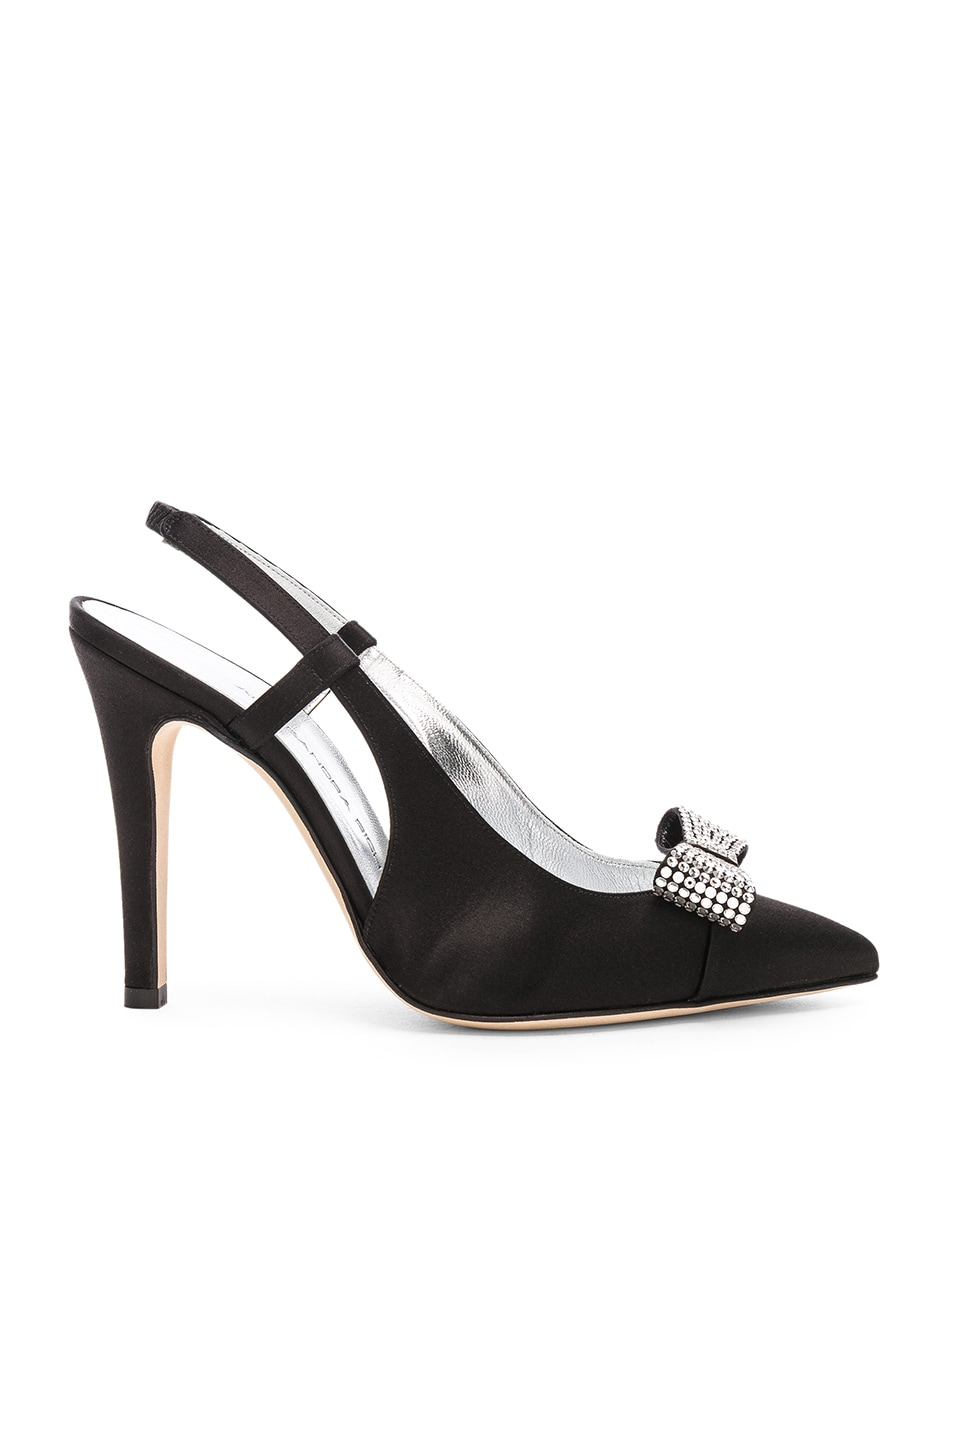 Image 1 of Alessandra Rich Satin Swarovski Bow Pumps in Black